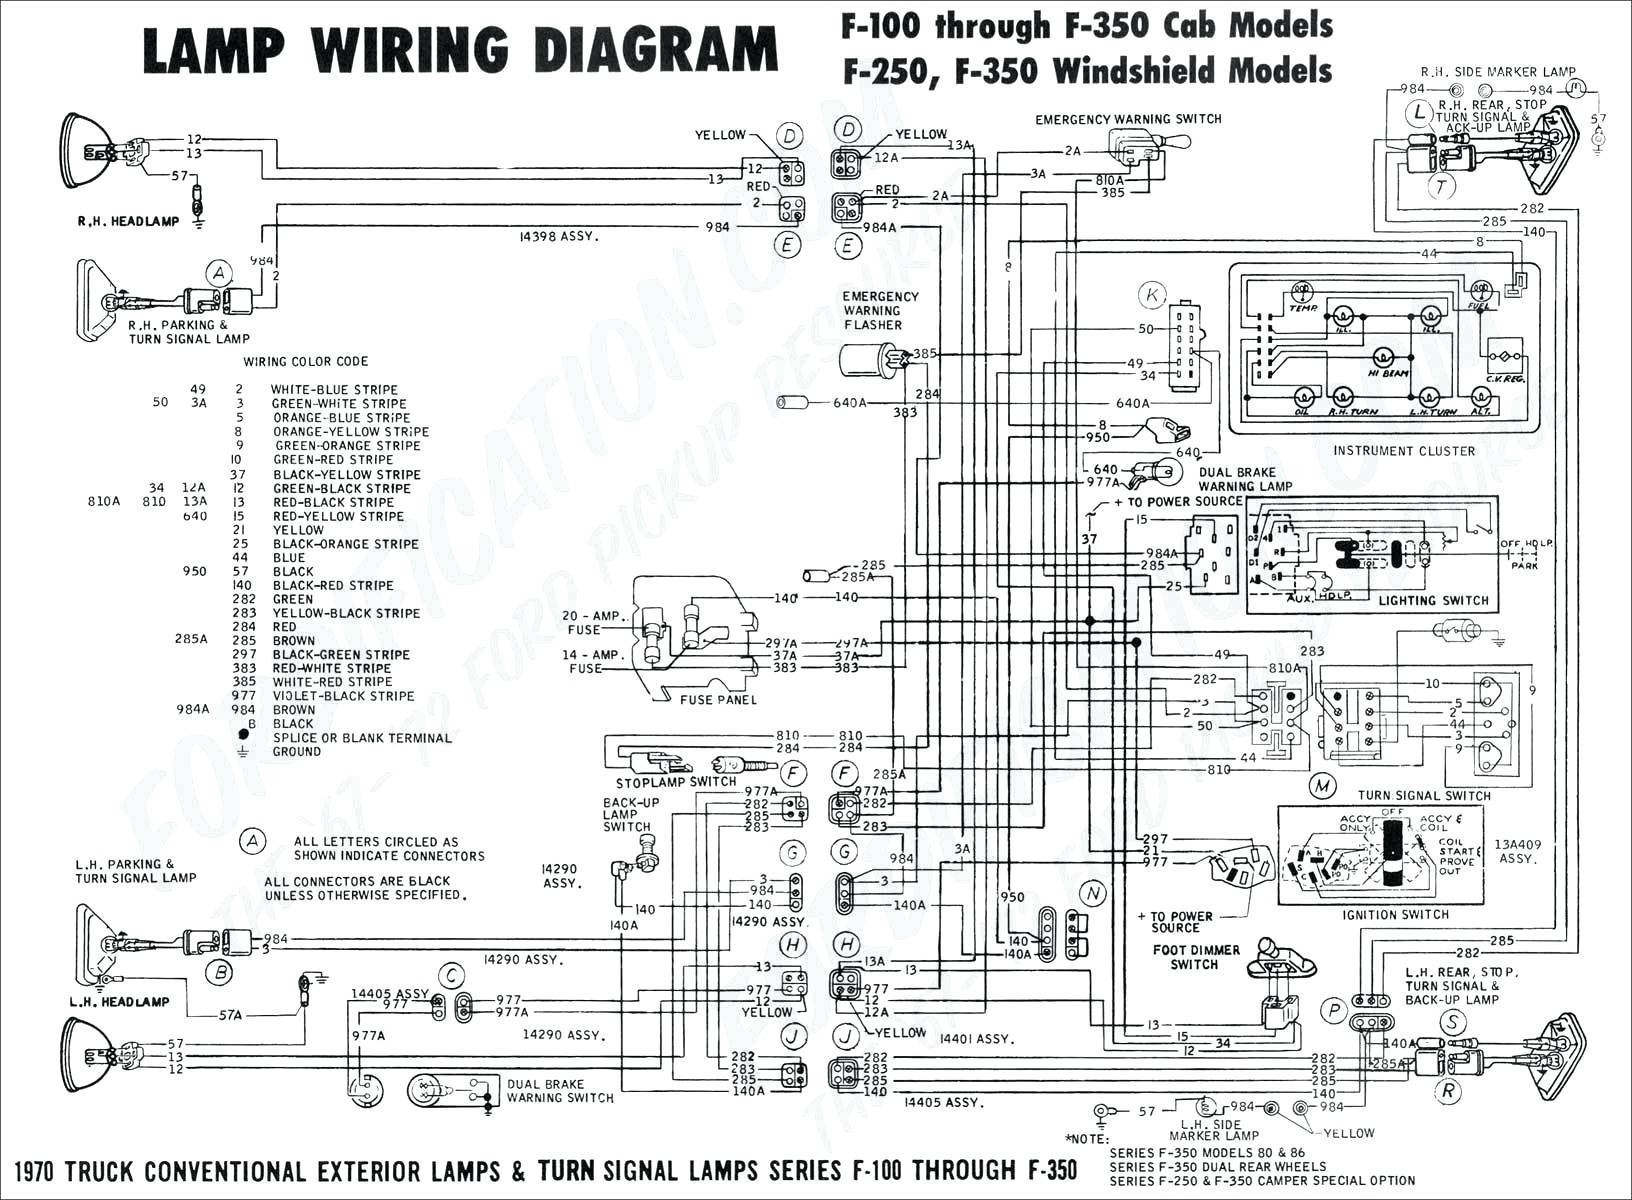 Tremendous Diagram Of Magneto Ignition System Electrical Wiring Diagram Software Wiring Cloud Onicaxeromohammedshrineorg